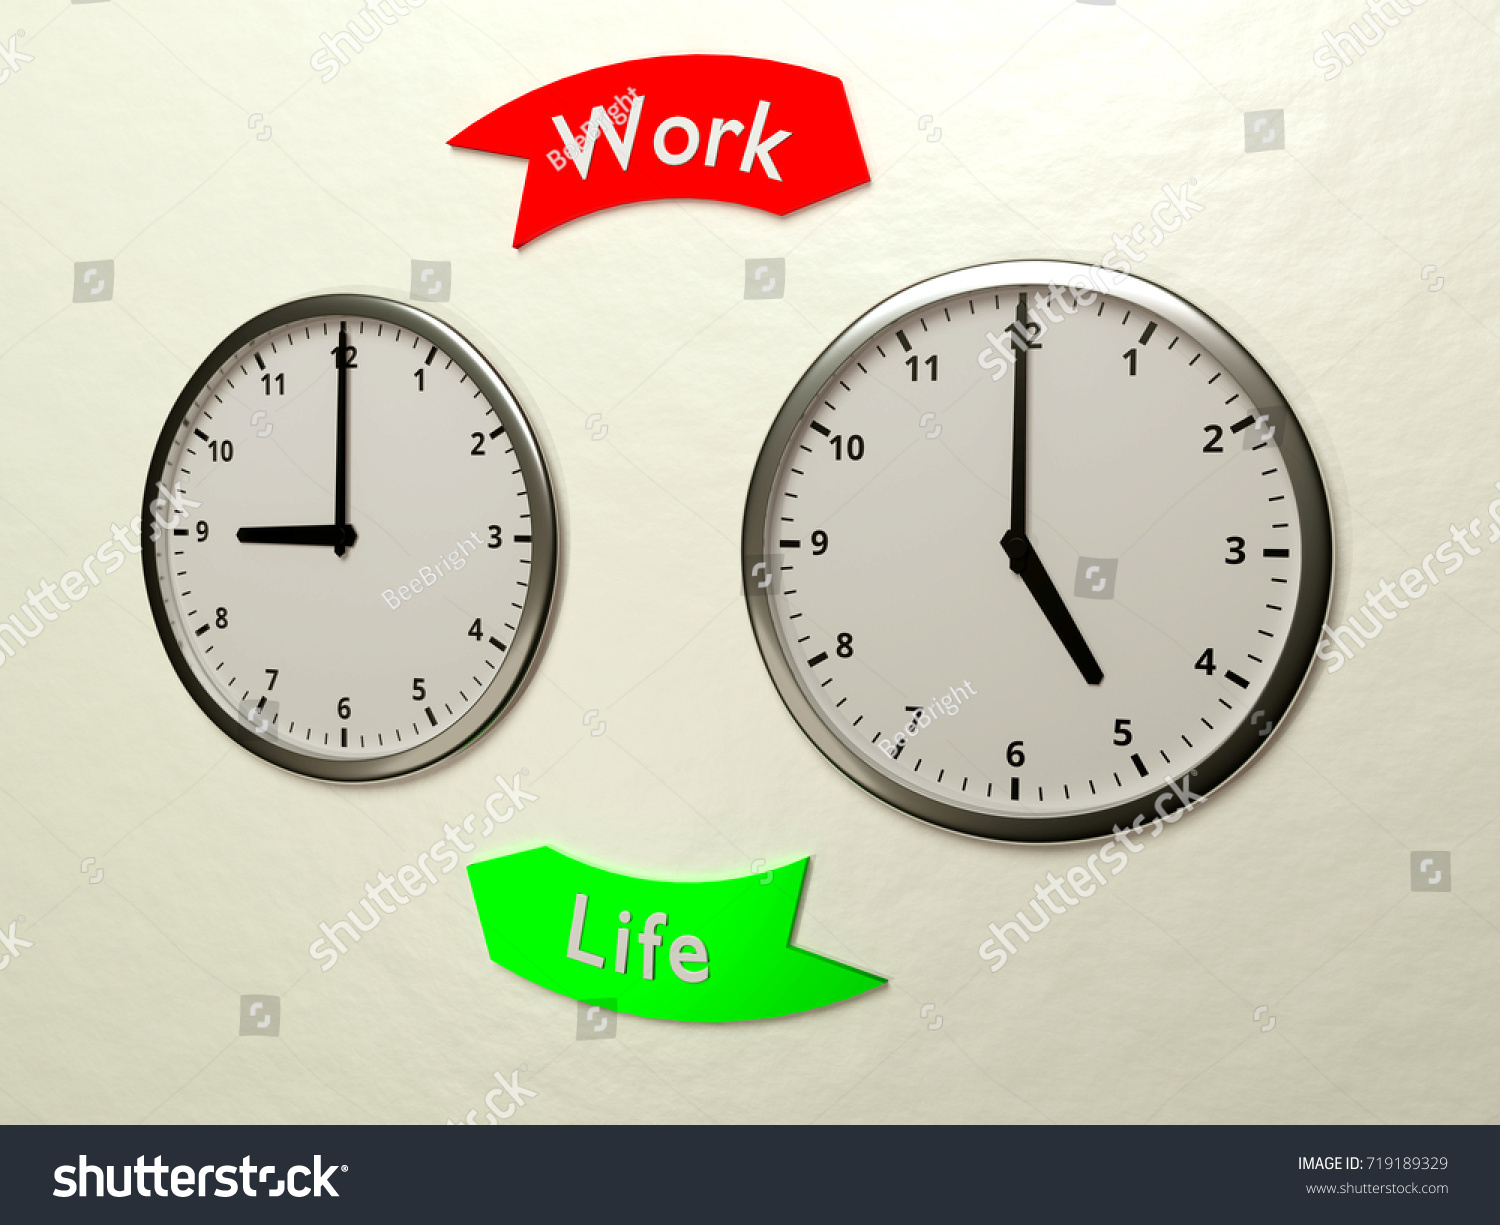 Royalty Free Stock Illustration Of Two Clocks On Wall Showing Time